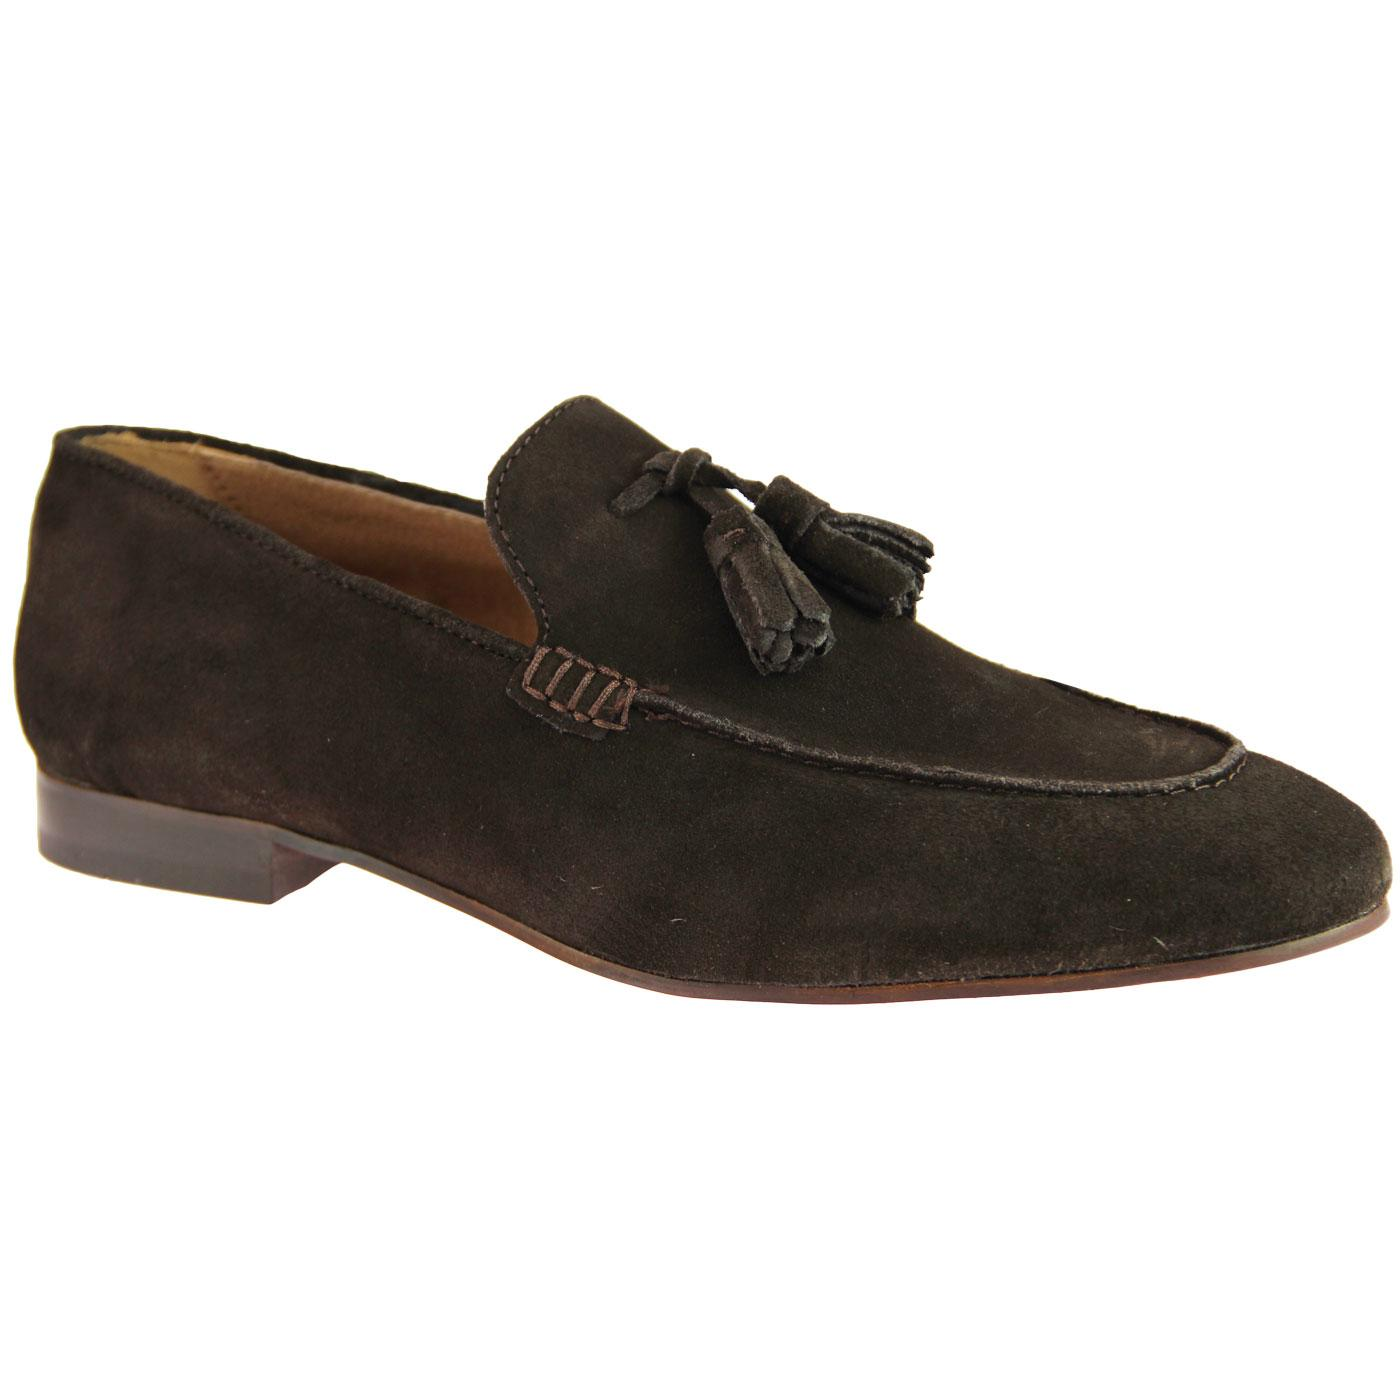 Bolton HUDSON Retro Mod Suede Tassel Loafers BROWN